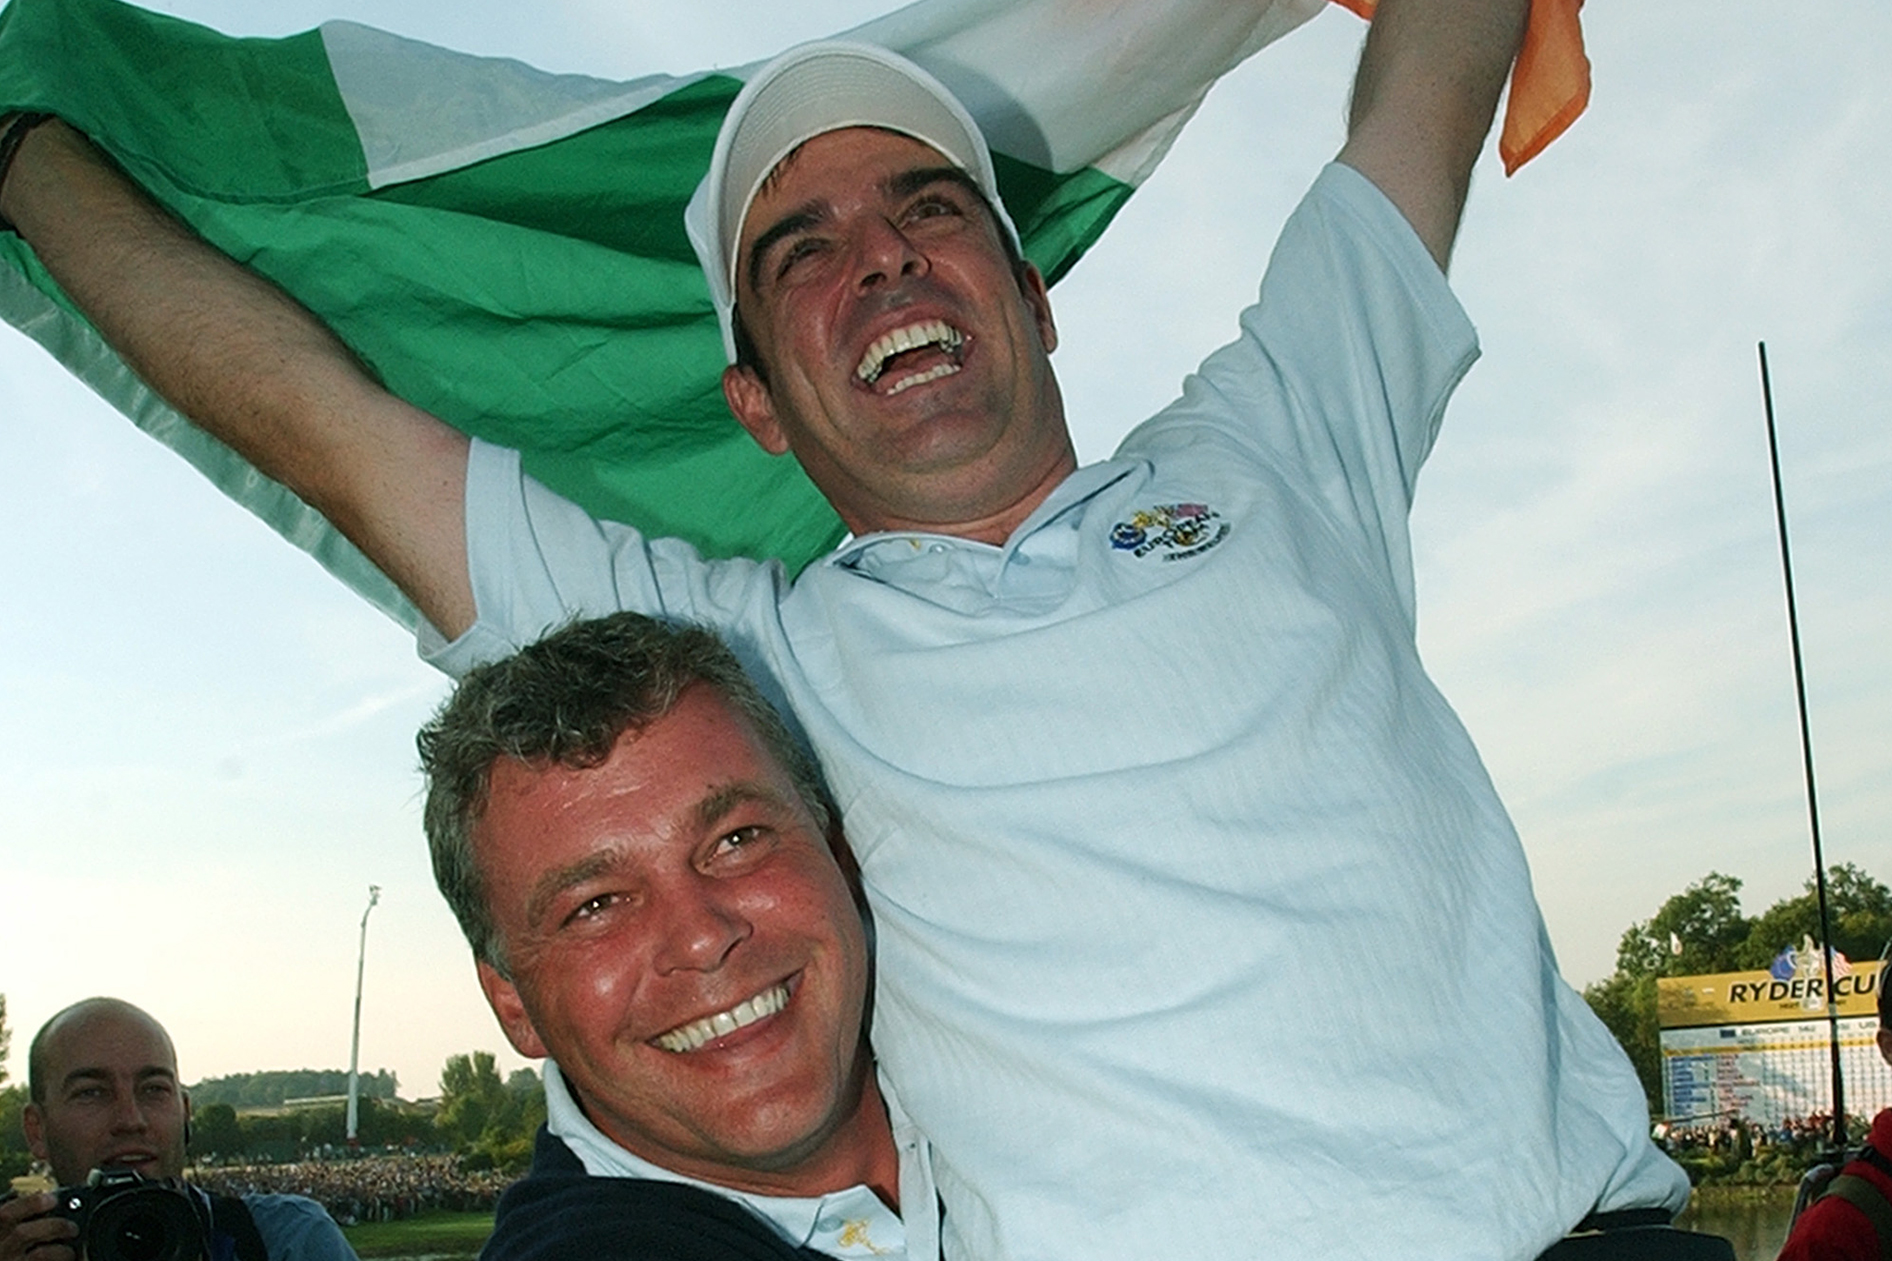 The following season, Clarke won the European Open in Ireland and clinched the English Open in 2002, months before helping Europe to win back the Ryder Cup at The Belfry (Photo: Getty Images)